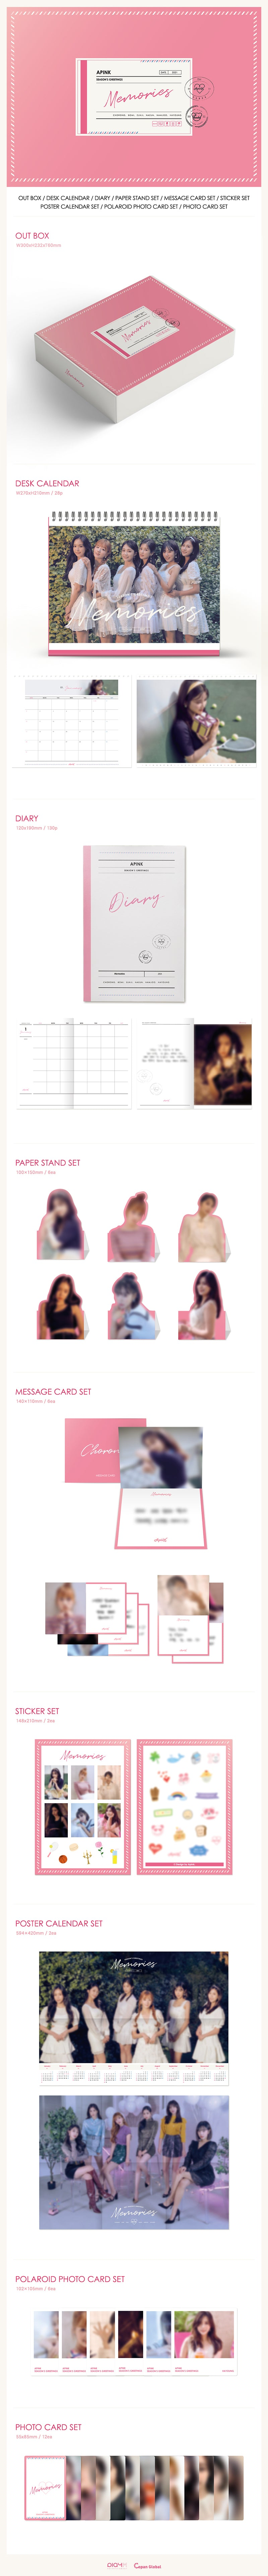 Apink - Memories (2021 Season's Greetings)